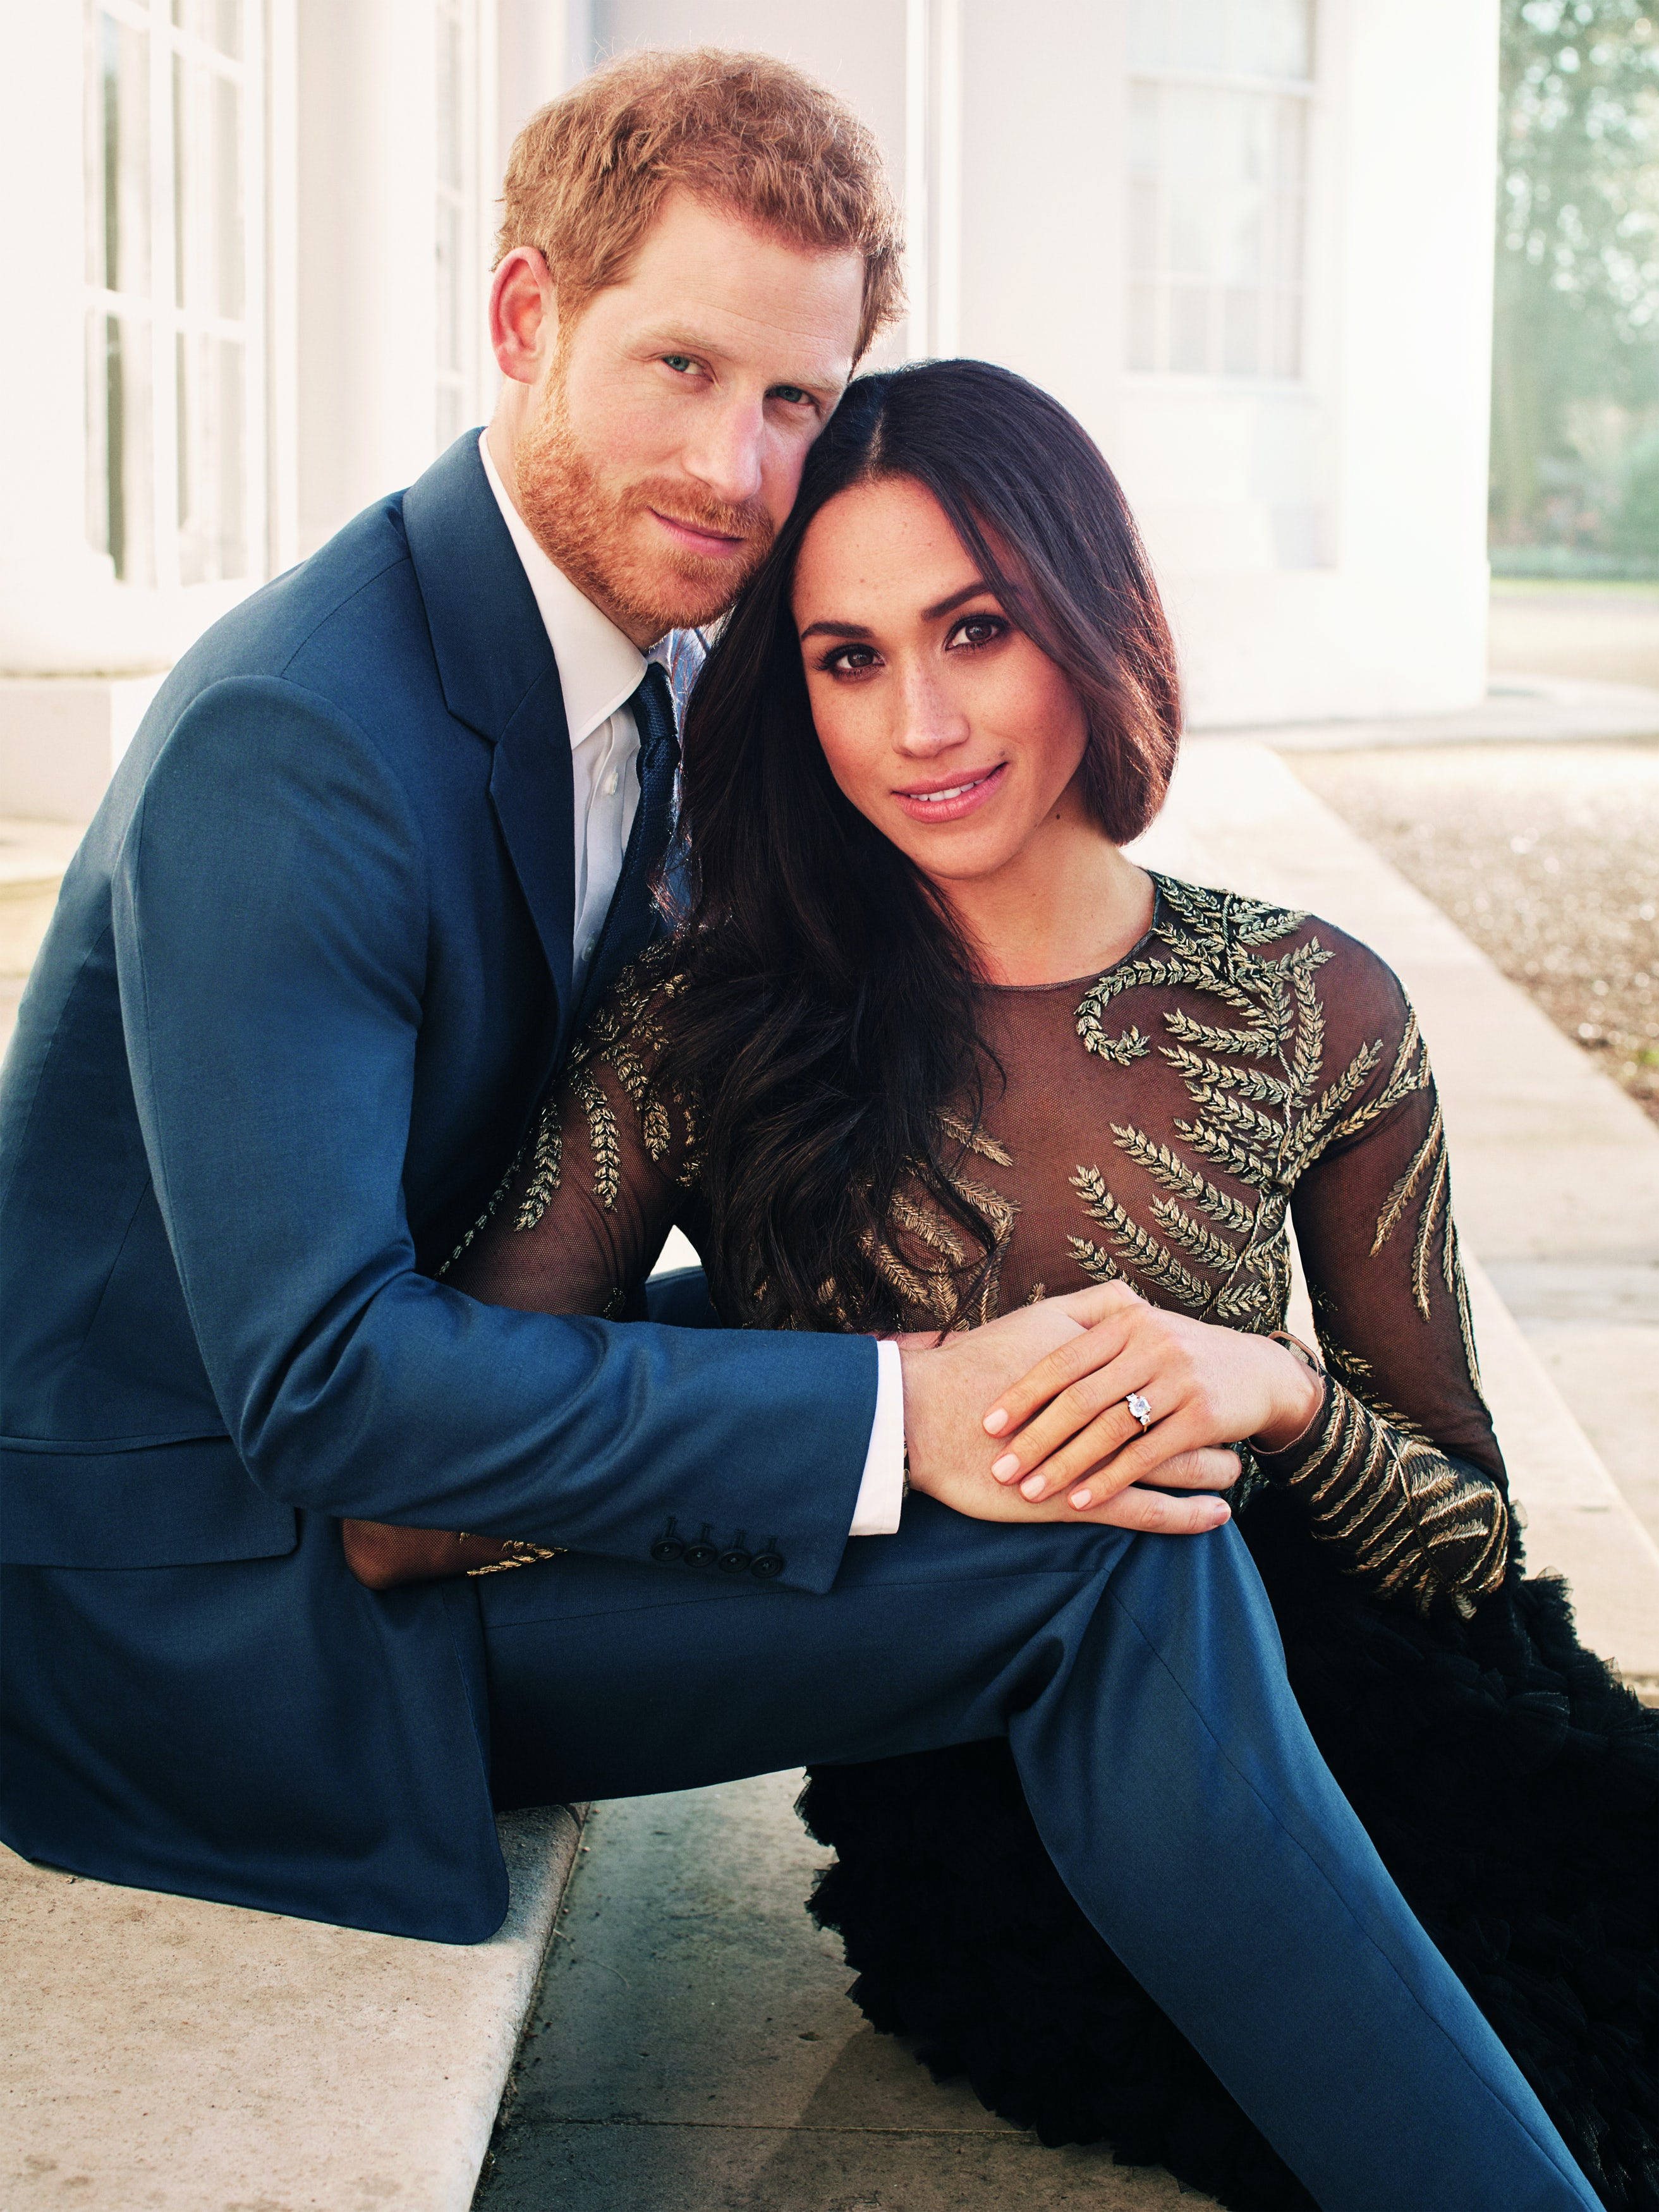 Meghan Markle: The Biggest Influencer of All?